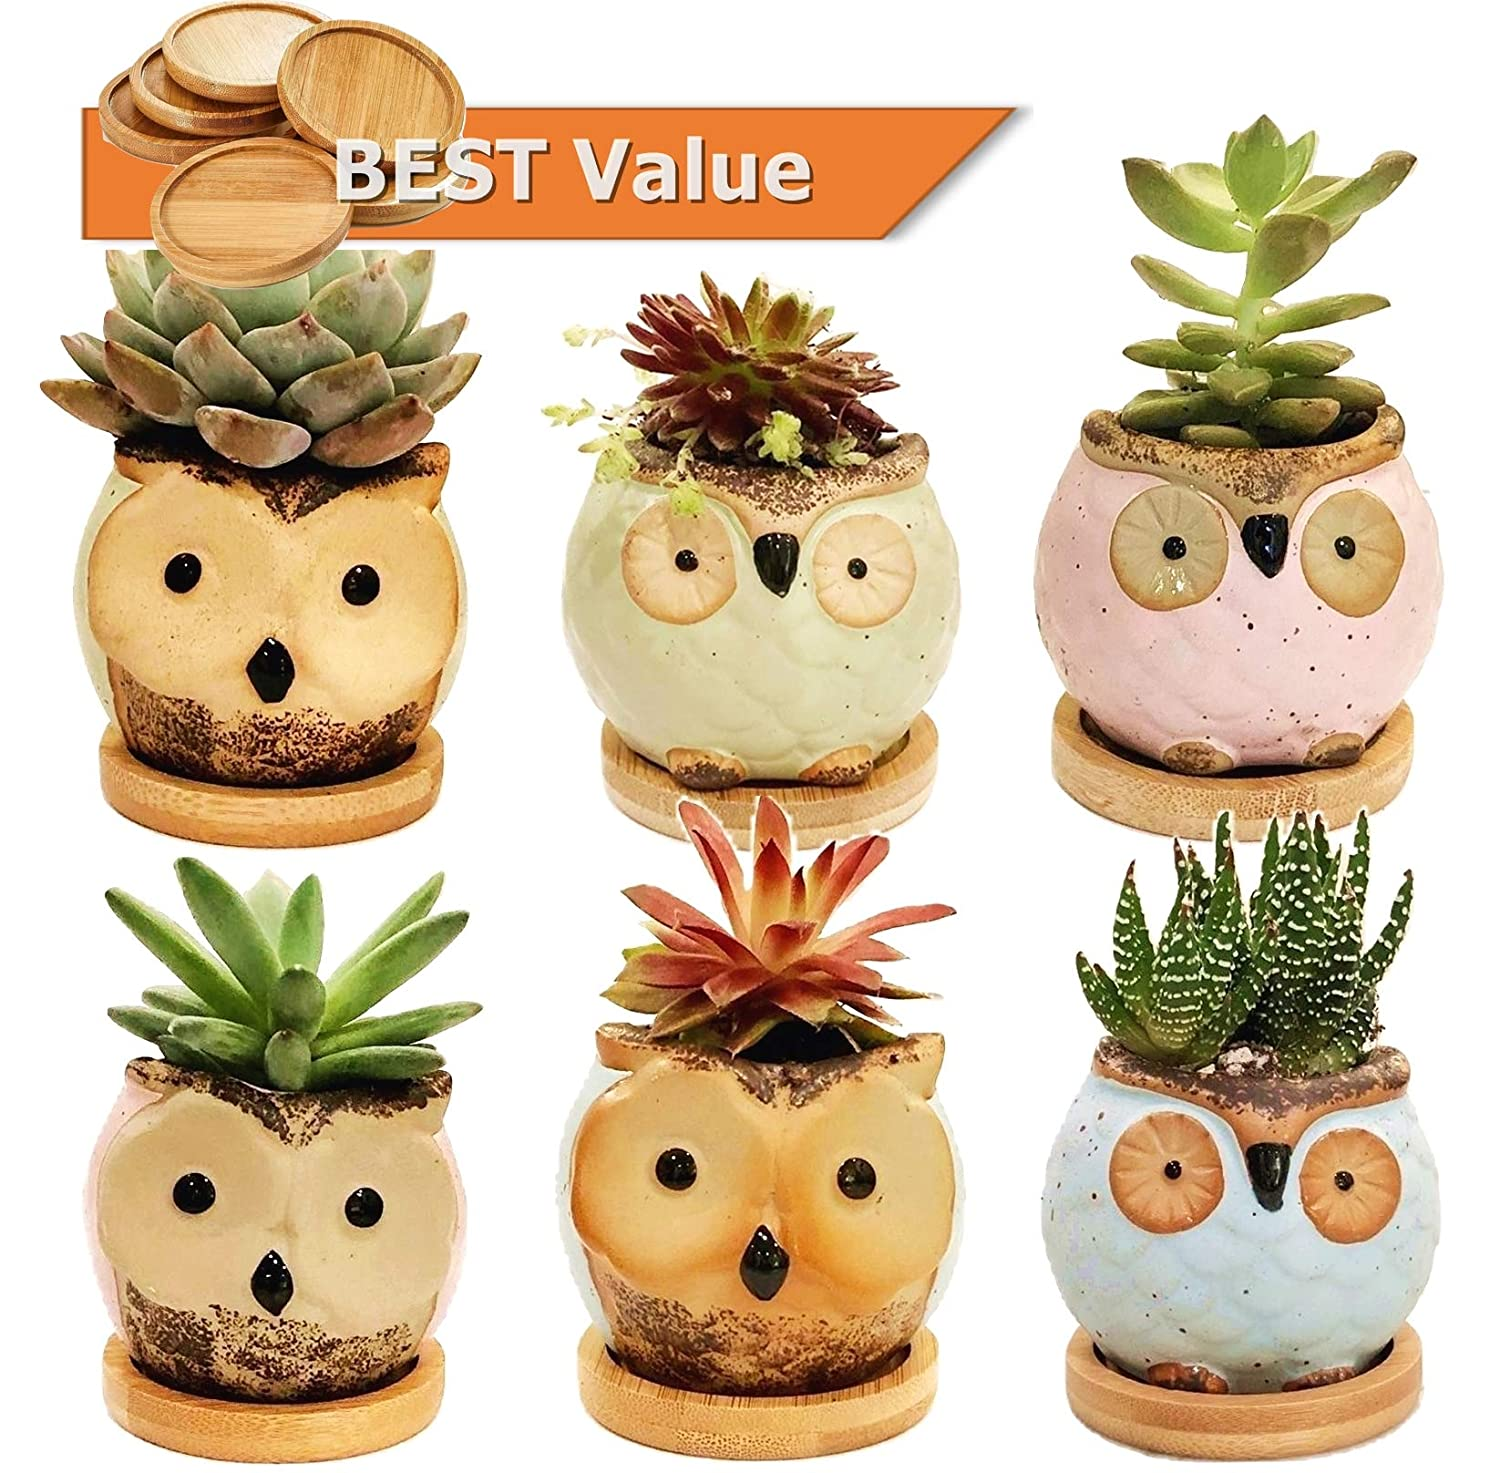 Chez JuJu Ceramic Owl Succulent Pots Cute Animal Flower Planters 2.8 with Drainage 6 Pack Bamboo Saucer Gift for Friend Family Birthday Wedding Holiday Kid Home Office Desktop Indoor Decor